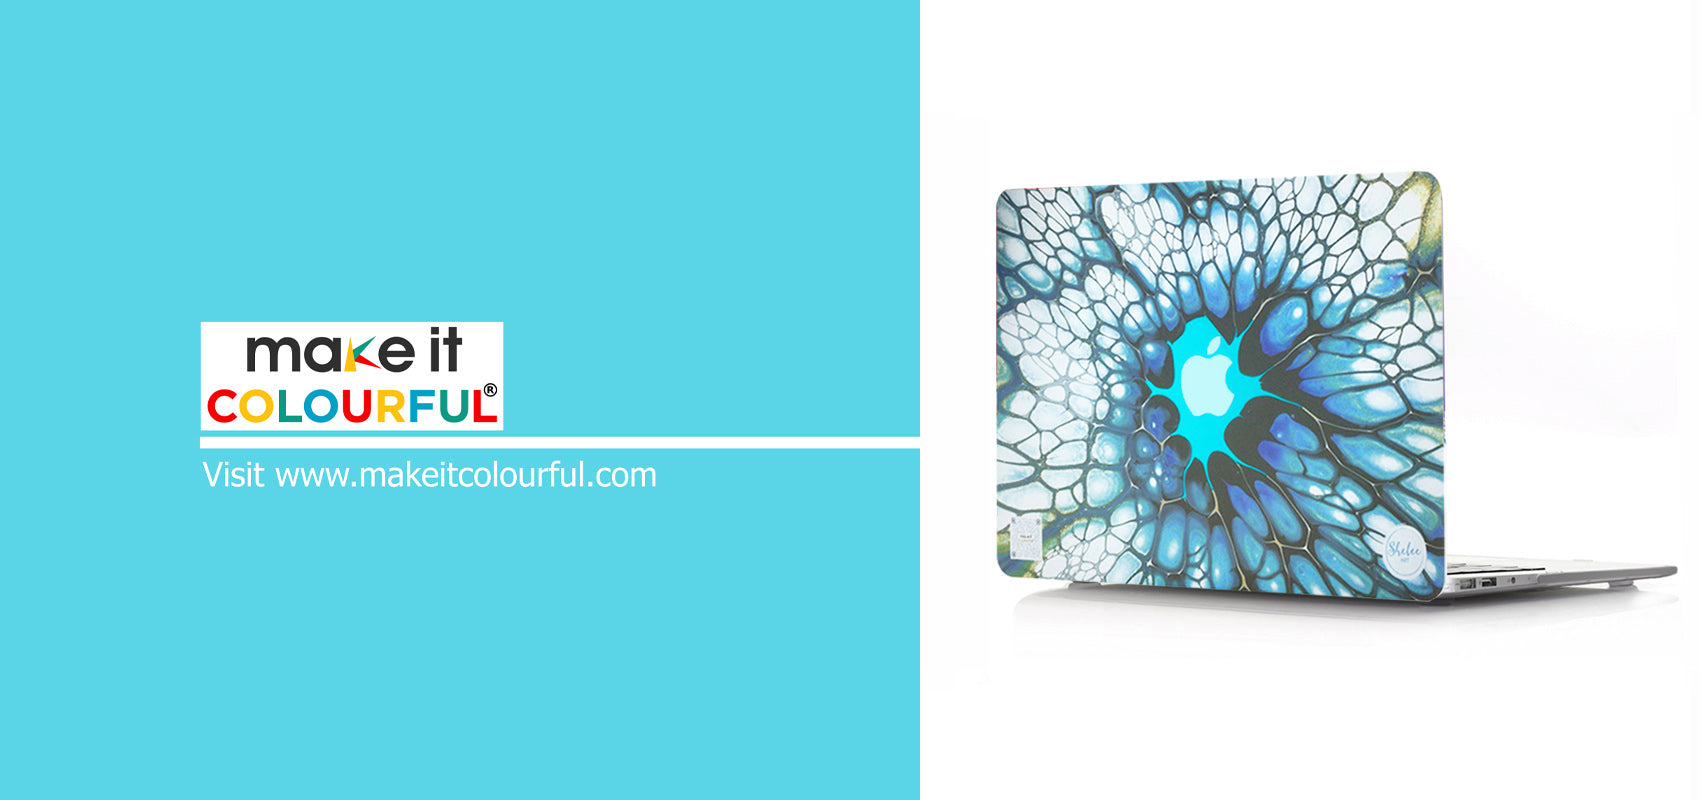 MacBook Case Collection | Digital accessories - Make It COLOURFUL®